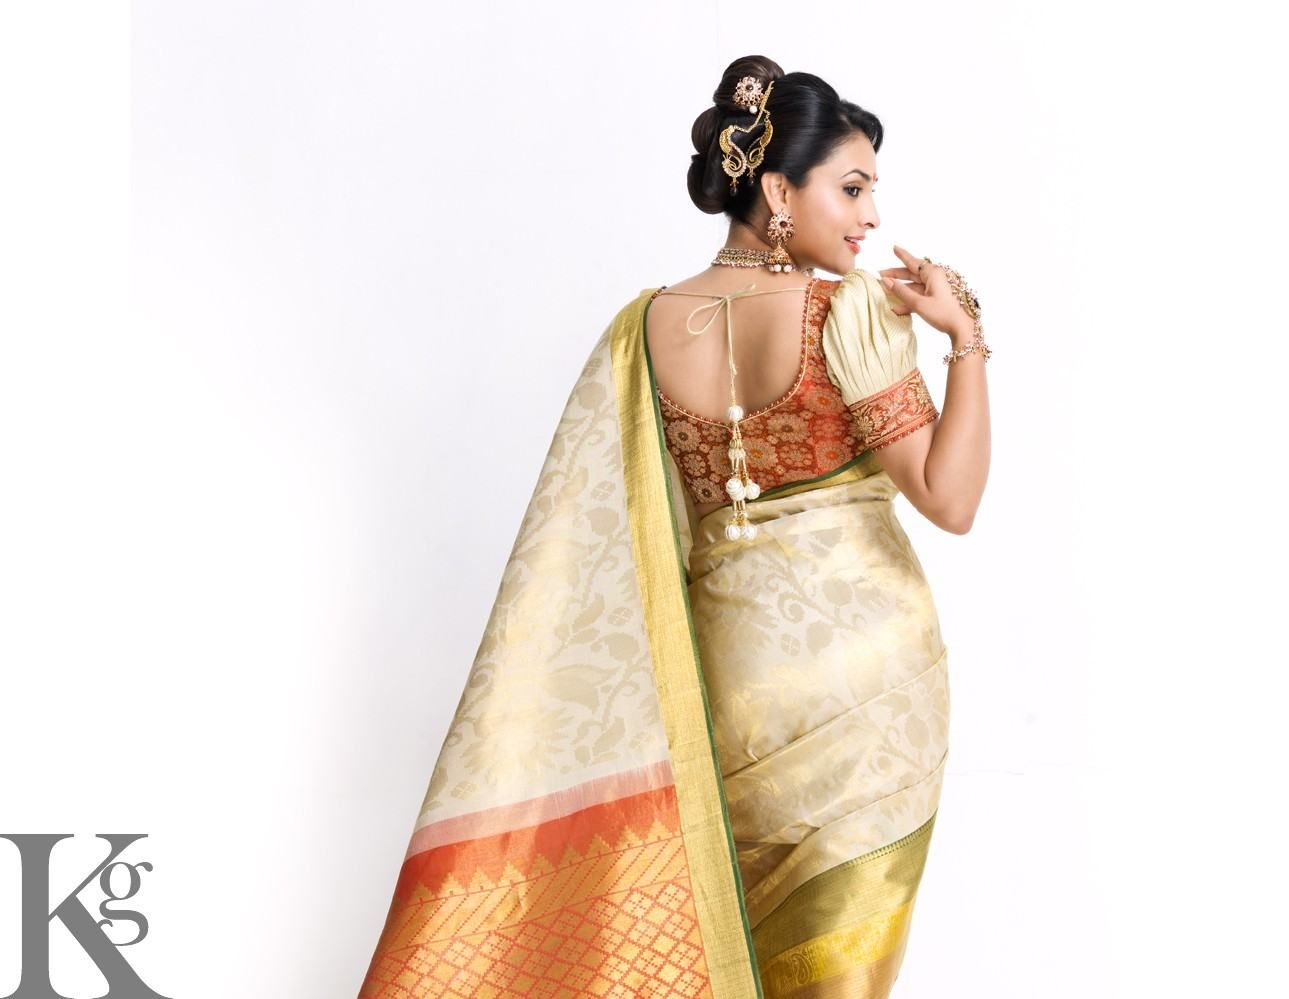 Pin by SNPhoto108 Photographer on Sari / Saree Photography Poses for ...